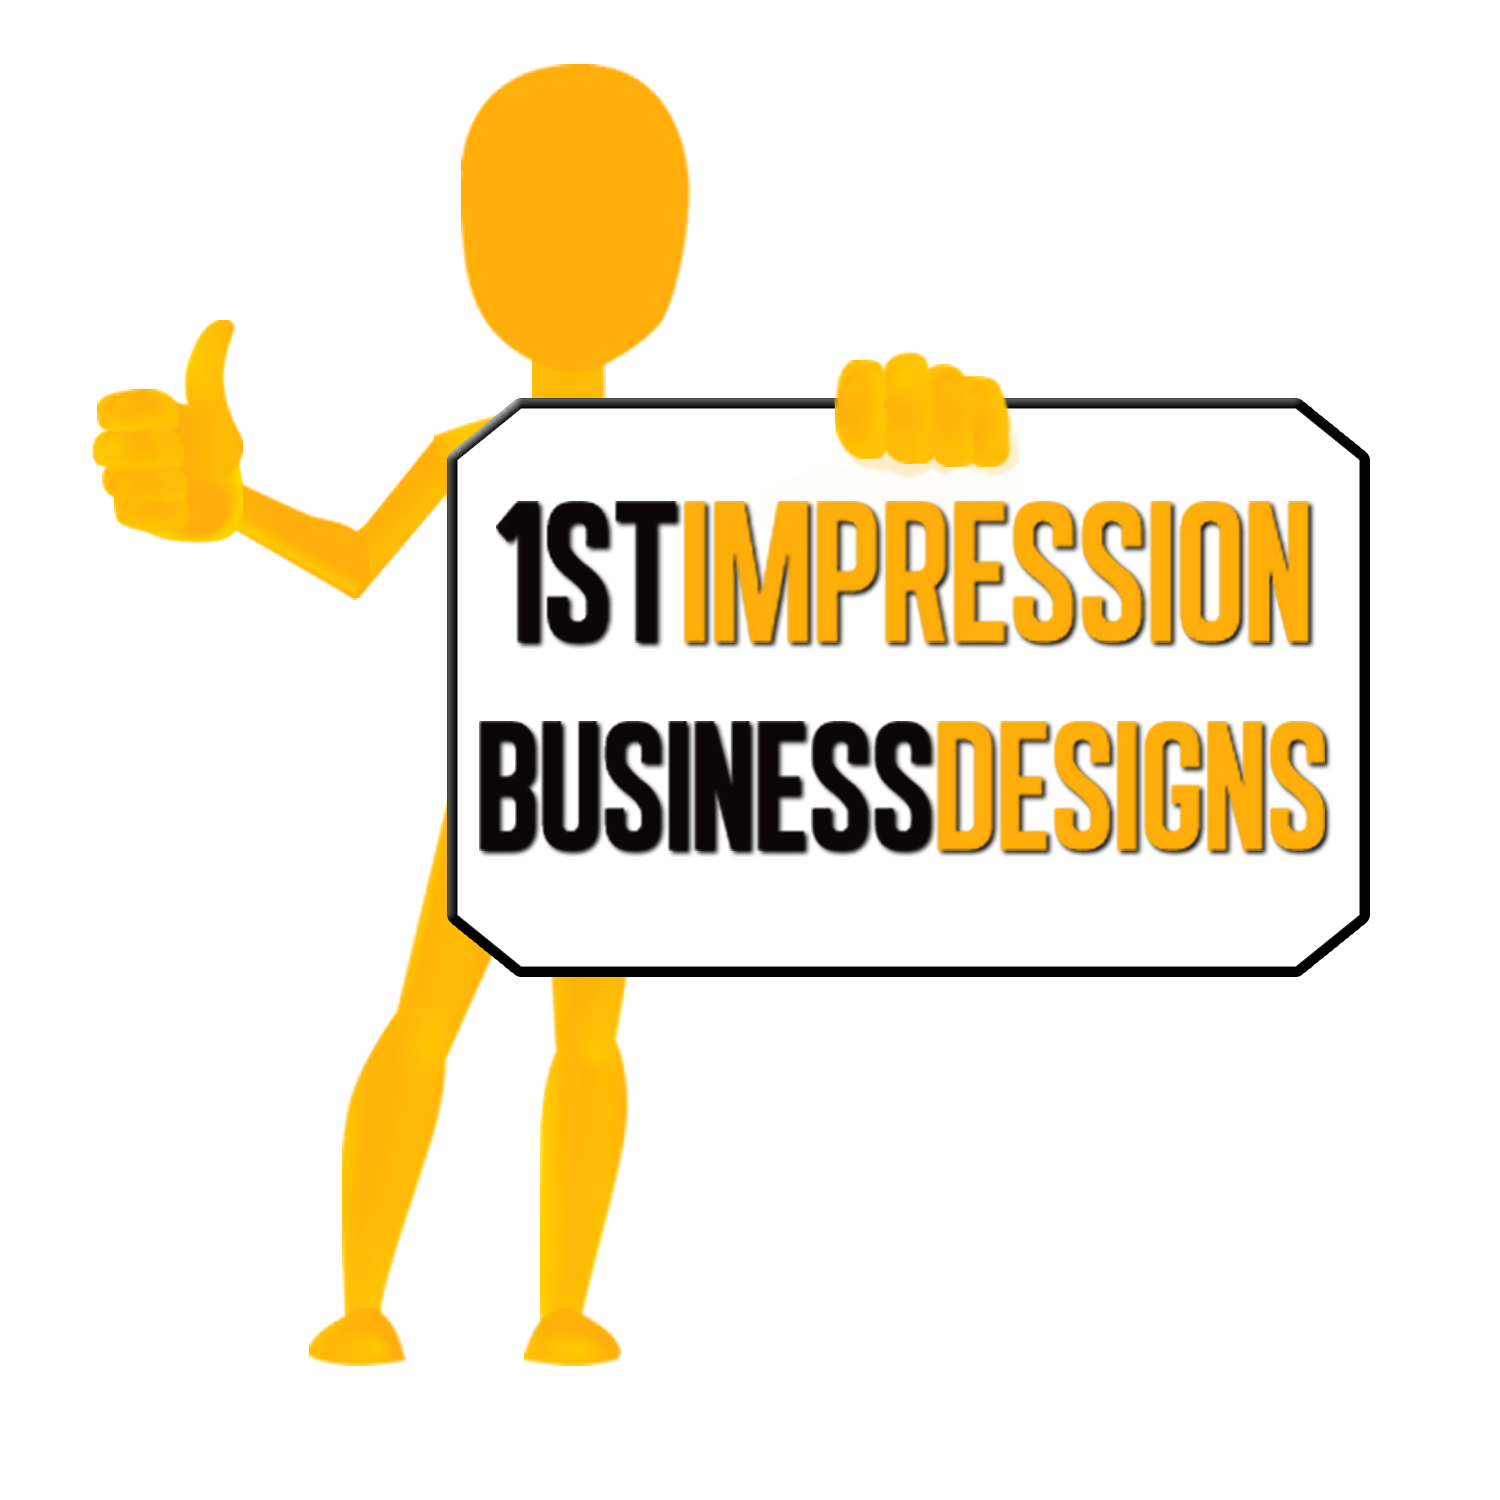 1st Impression Business Designs